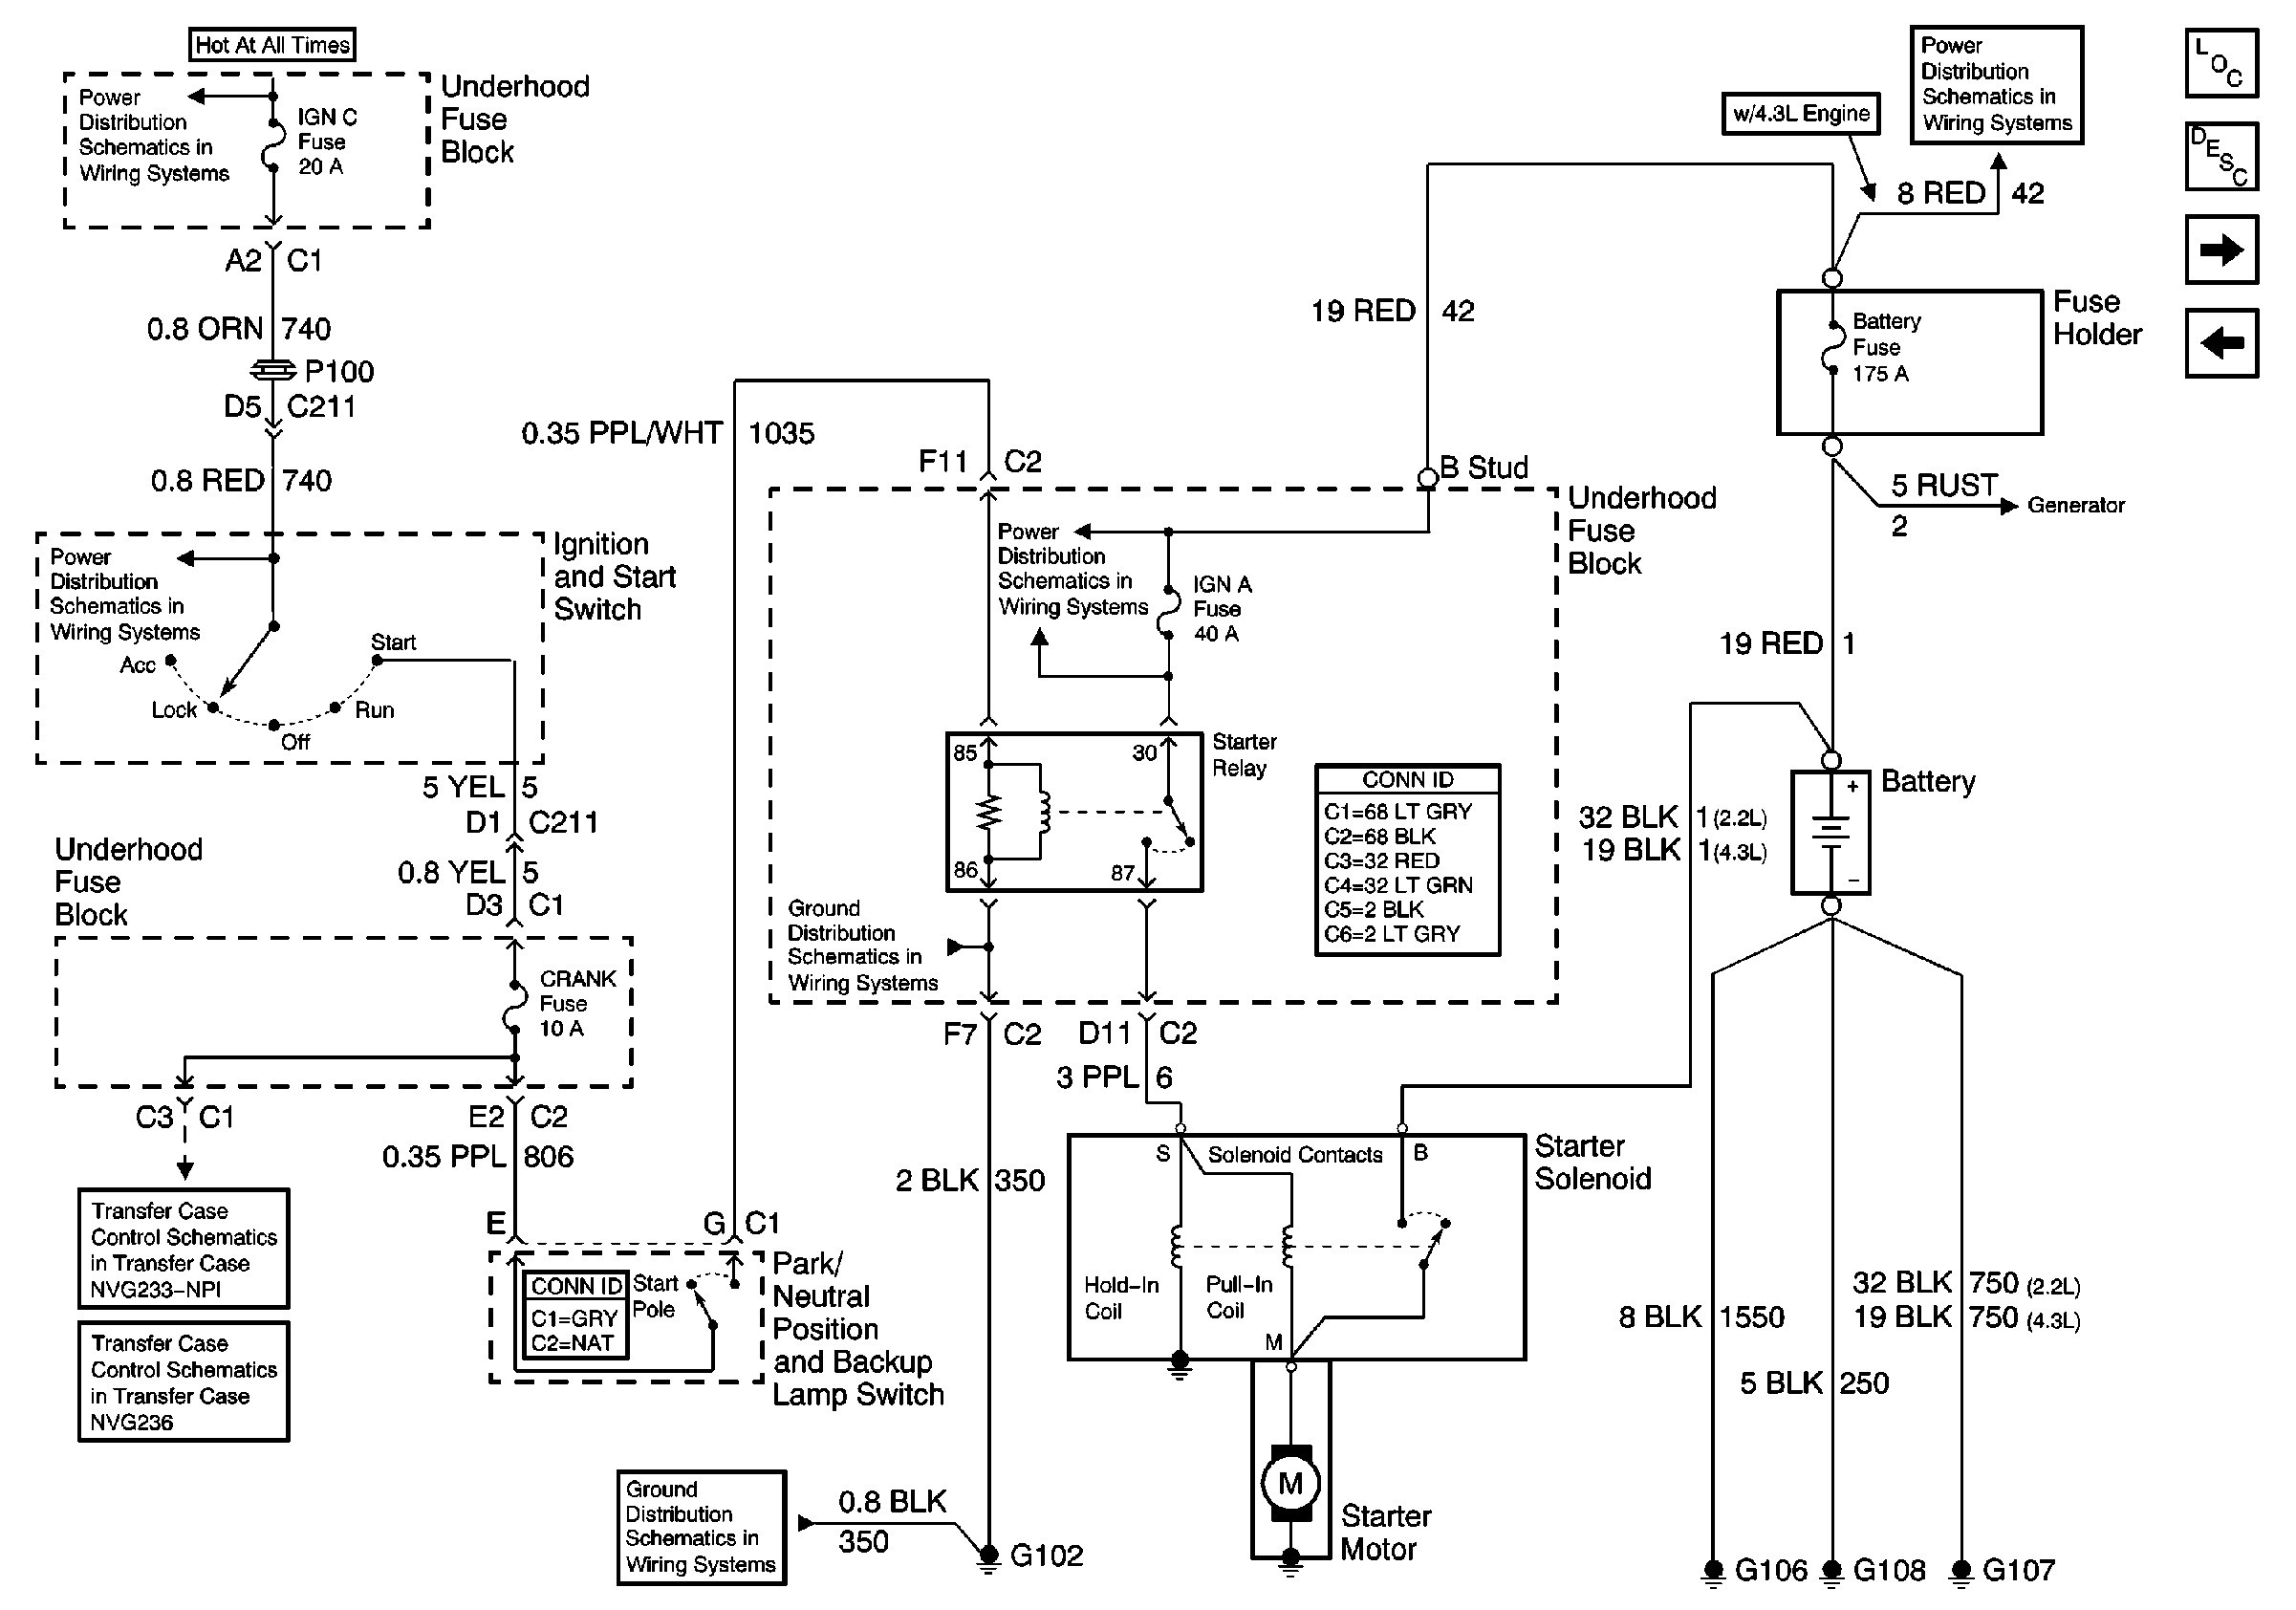 DIAGRAM] 2000 Chevrolet Blazer Wiring Diagram FULL Version HD Quality Wiring  Diagram - EBOOKEPUBPDF.HOTEL-PATTON.FRebookepubpdf.hotel-patton.fr